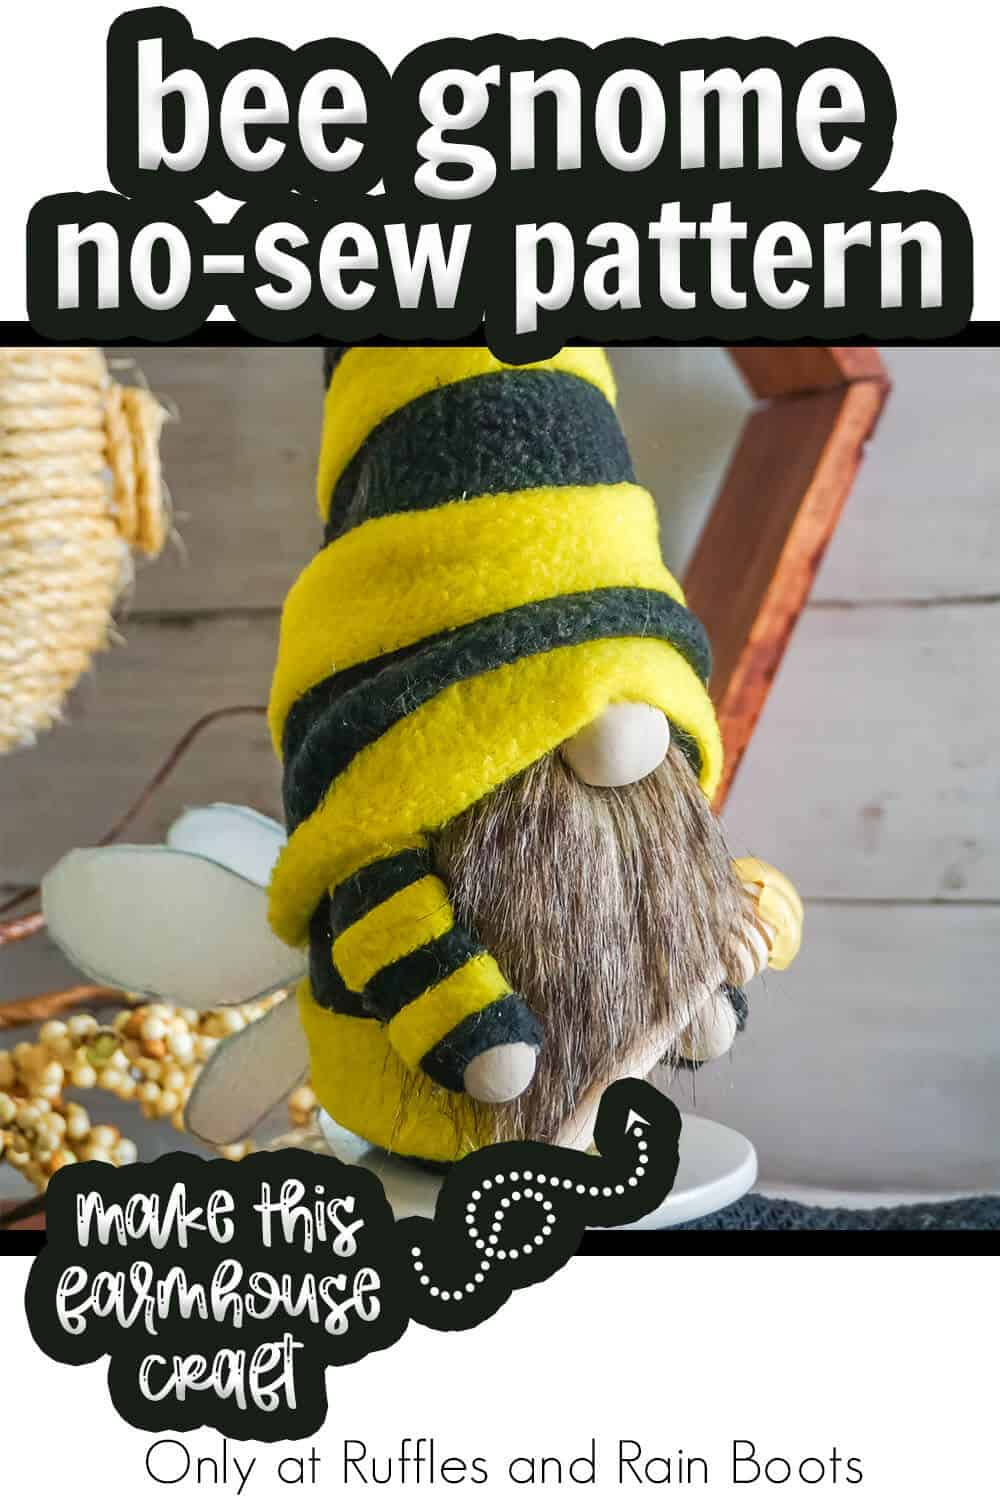 no-sew pattern to make a bee gnome with text which reads bee gnome no-sew pattern make this farmhouse craft